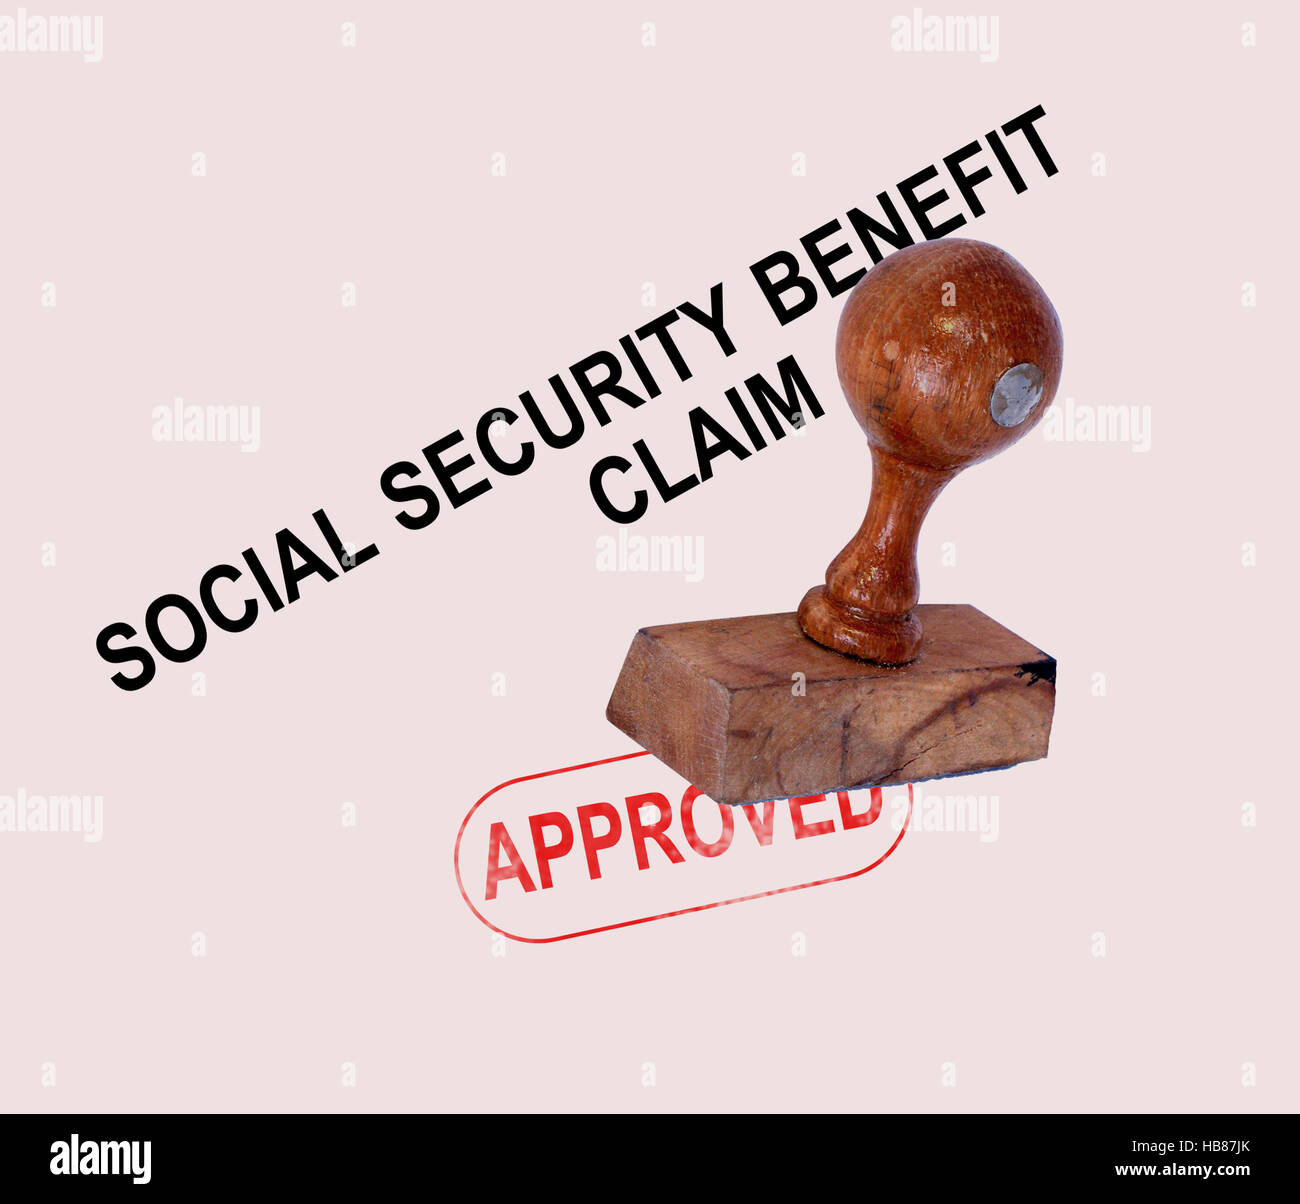 Social Security Claim Approved Stamp - Stock Image